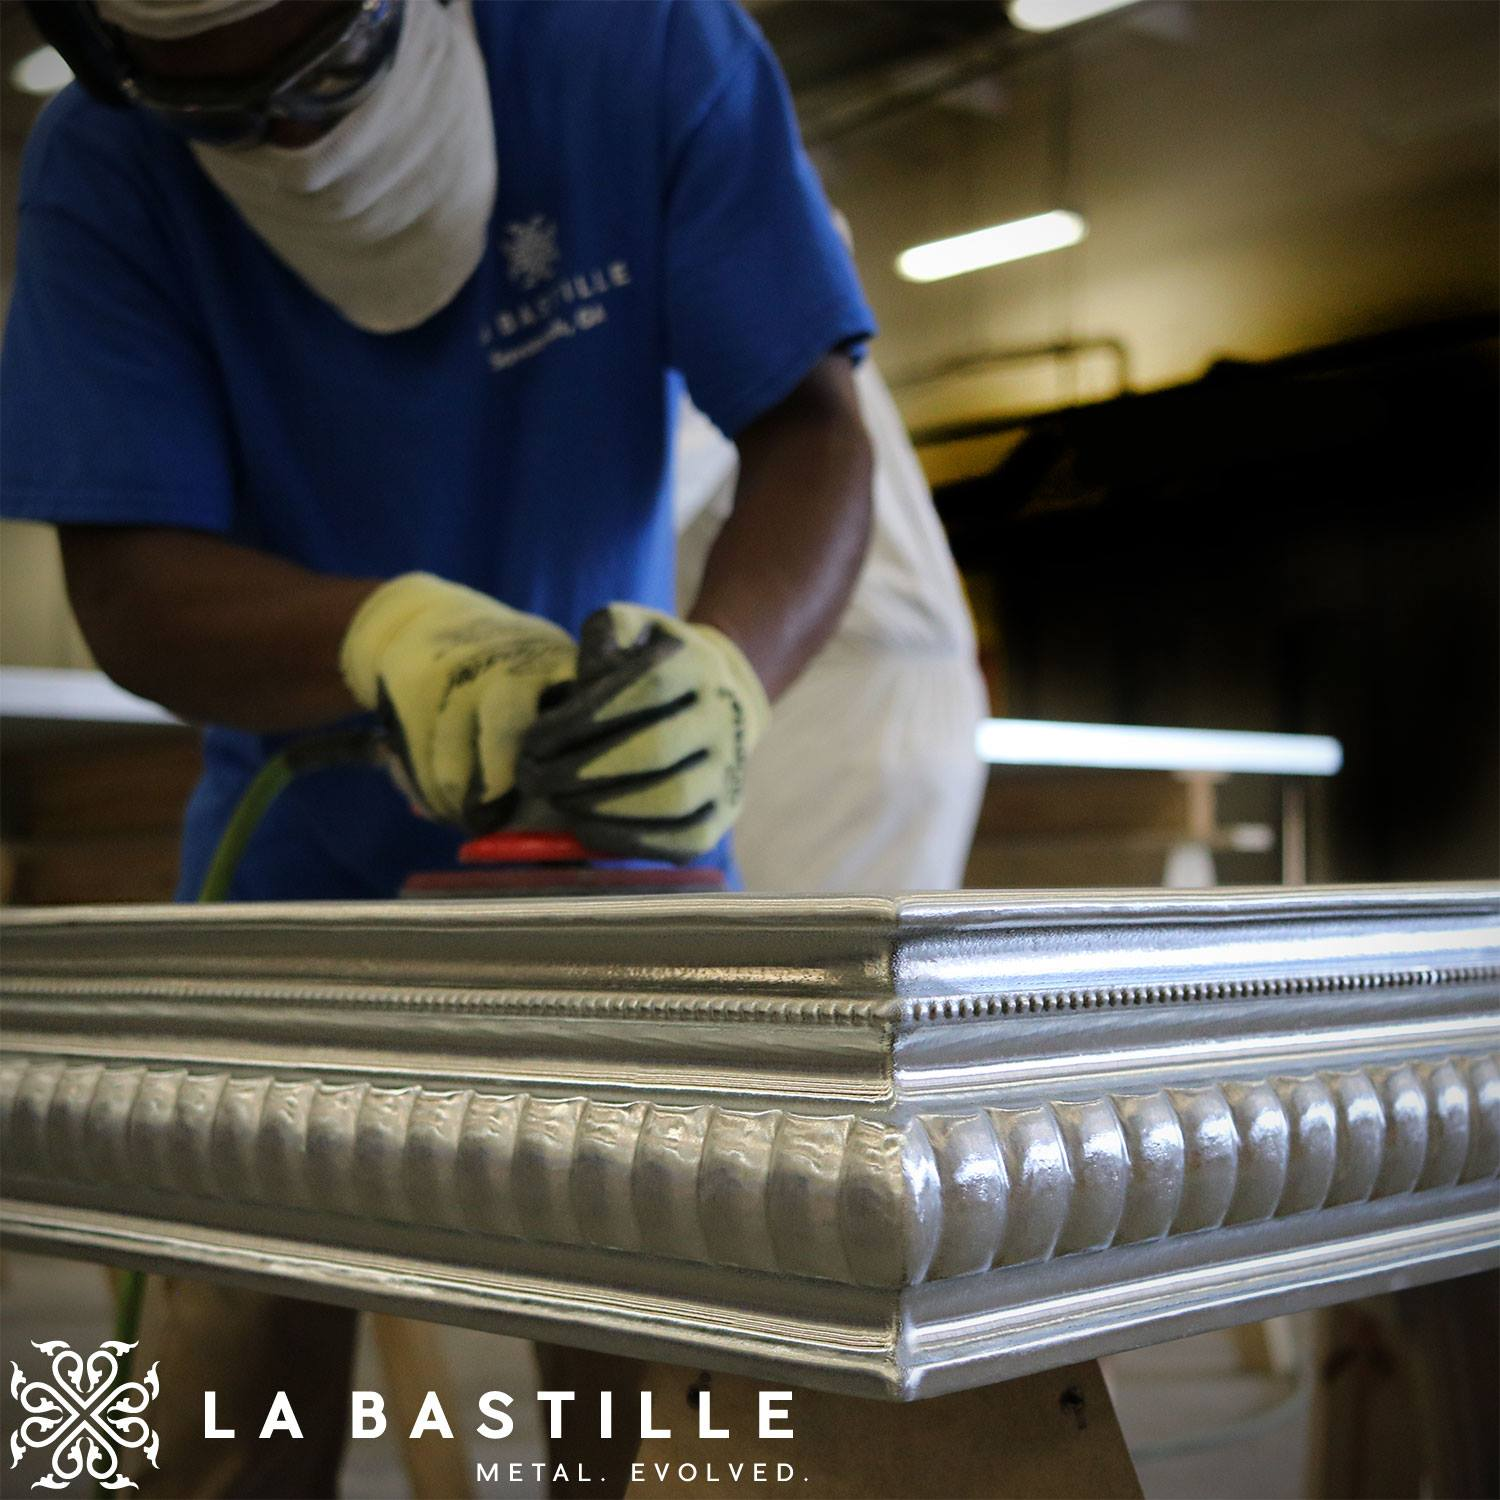 La Bastille is the leading producer of custom cast zinc countertops and custom cast pewter countertops in the world. We handcraft each countertop, as well as design and build cast zinc range hoods, cast pewter range hoods, one-of-a-kind zinc statement tables,  zinc sculptural features, and a multitude of metal architectural accents. Each unique project is designed and crafted with your individual choice of edge profile, metal, and finish, making each project a beautiful work of art designed in partnership with our clients. In addition to our custom pieces, The Bastille Collection, coming in 2018, will offer an exclusive line of limited production tables, range hoods, & furniture accessories designed exclusively by our team. These semi-custom pieces are the embodiment of our favorite concepts from years of experience in design, fabrication, and experimentation. La Bastille was established in 2010, and we are a growing group of designers and artisans based out of Savannah, Georgia. We tackle projects large and small for some of the most well-known designers and restaurateurs around the globe. We pride ourselves in undertaking complex designs with cutting-edge approaches. We co-design each custom project with our clients, championing practical design solutions. The result is a one-of-a-kind statement piece, fabricated to last. Our success is a blend of fearless artistry, traditional craftsmanship, superior service, and a strong commitment to community involvement. Our name, La Bastille, comes from the famous fortress in Paris which is famously symbolic of transition and rebellion. The Storming of the Bastille on July 14, 1789, marked the beginning of the French Revolution. Taking inspiration from this important moment in history, we aspire to revolutionize centuries-old materials with new technology and innovation, creating fresh and current designs steeped in history and tradition.